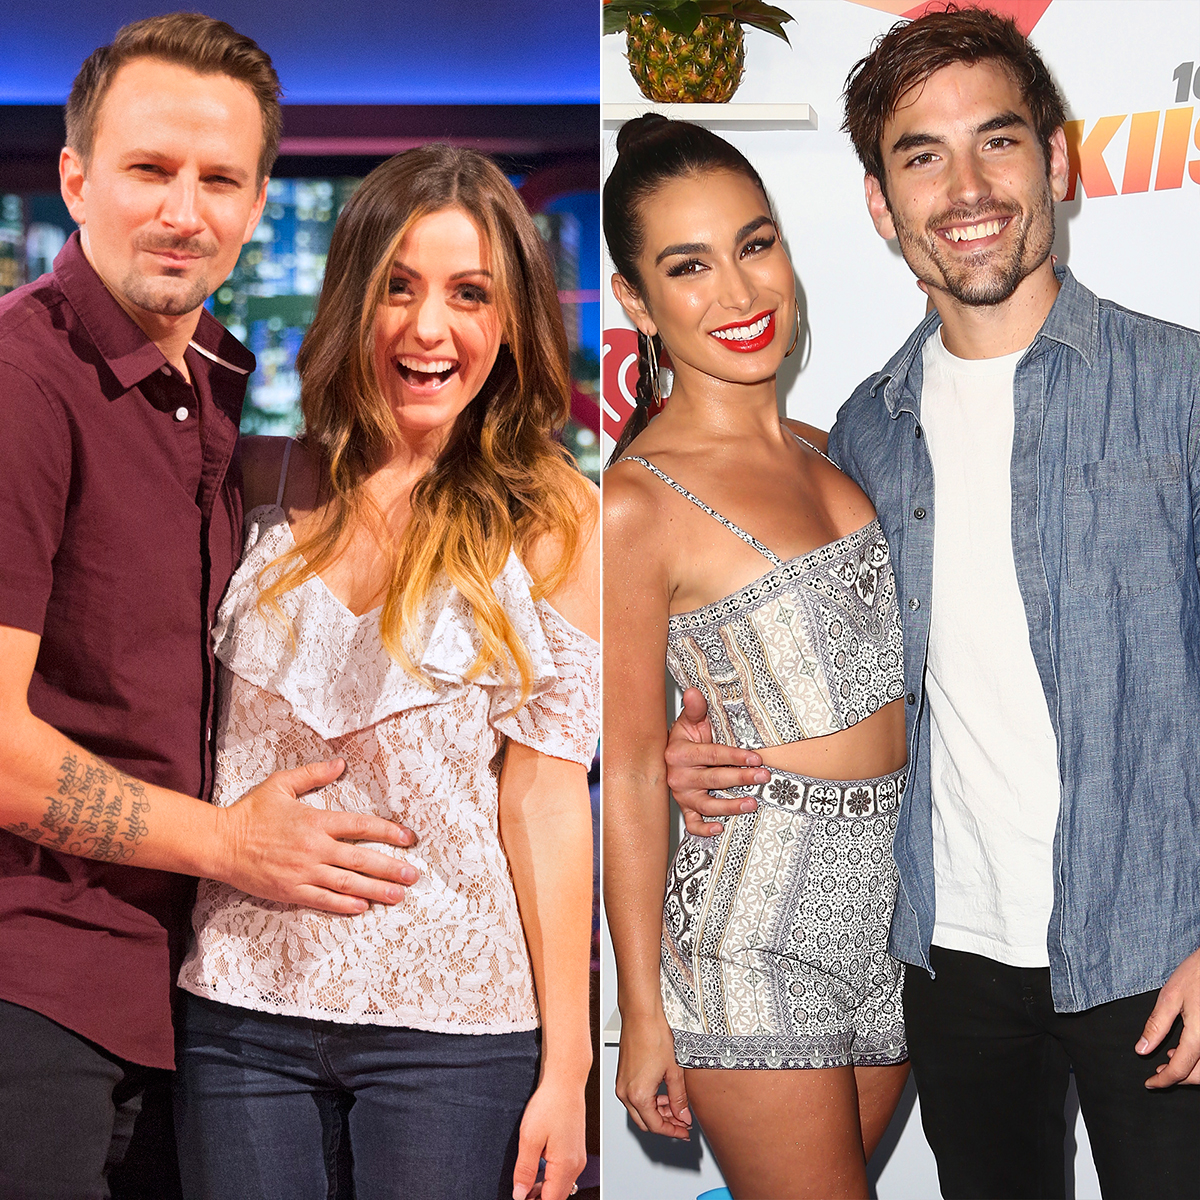 chris and sarah from bachelor pad still dating